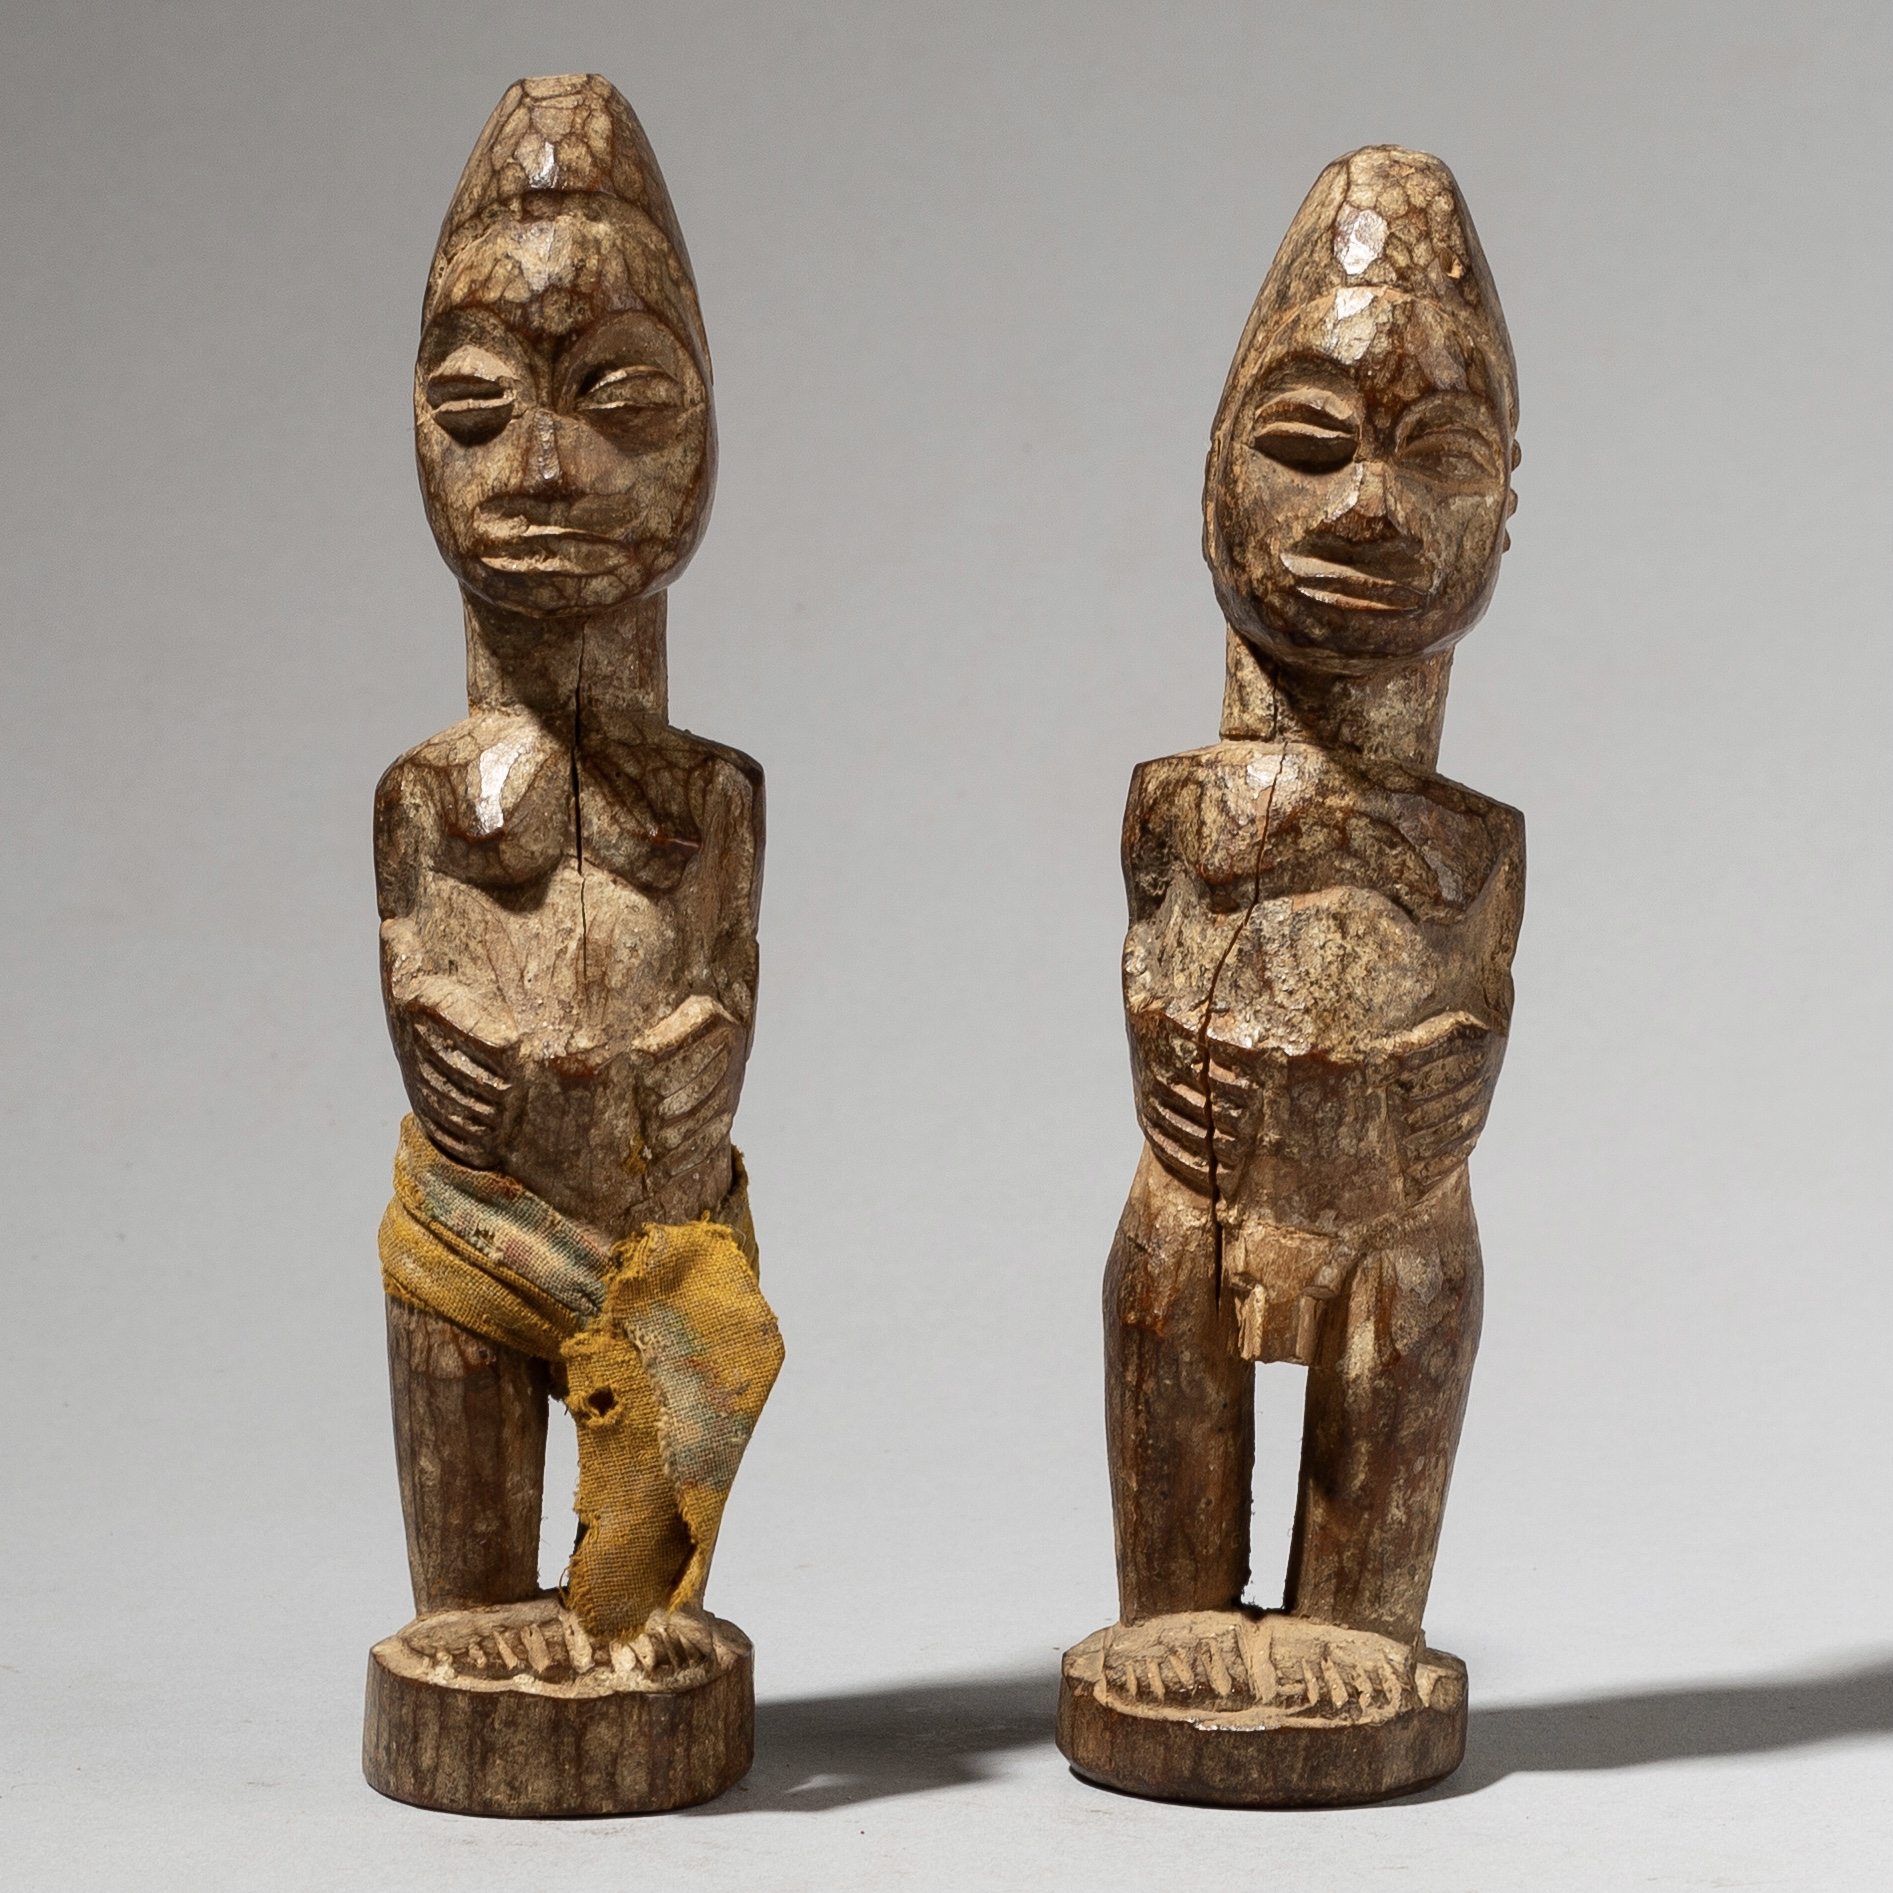 A SMALL PAIR OF BAULE CHARM FIGURES FROM THE IVORY COAST W AFRICA ( No 4080)